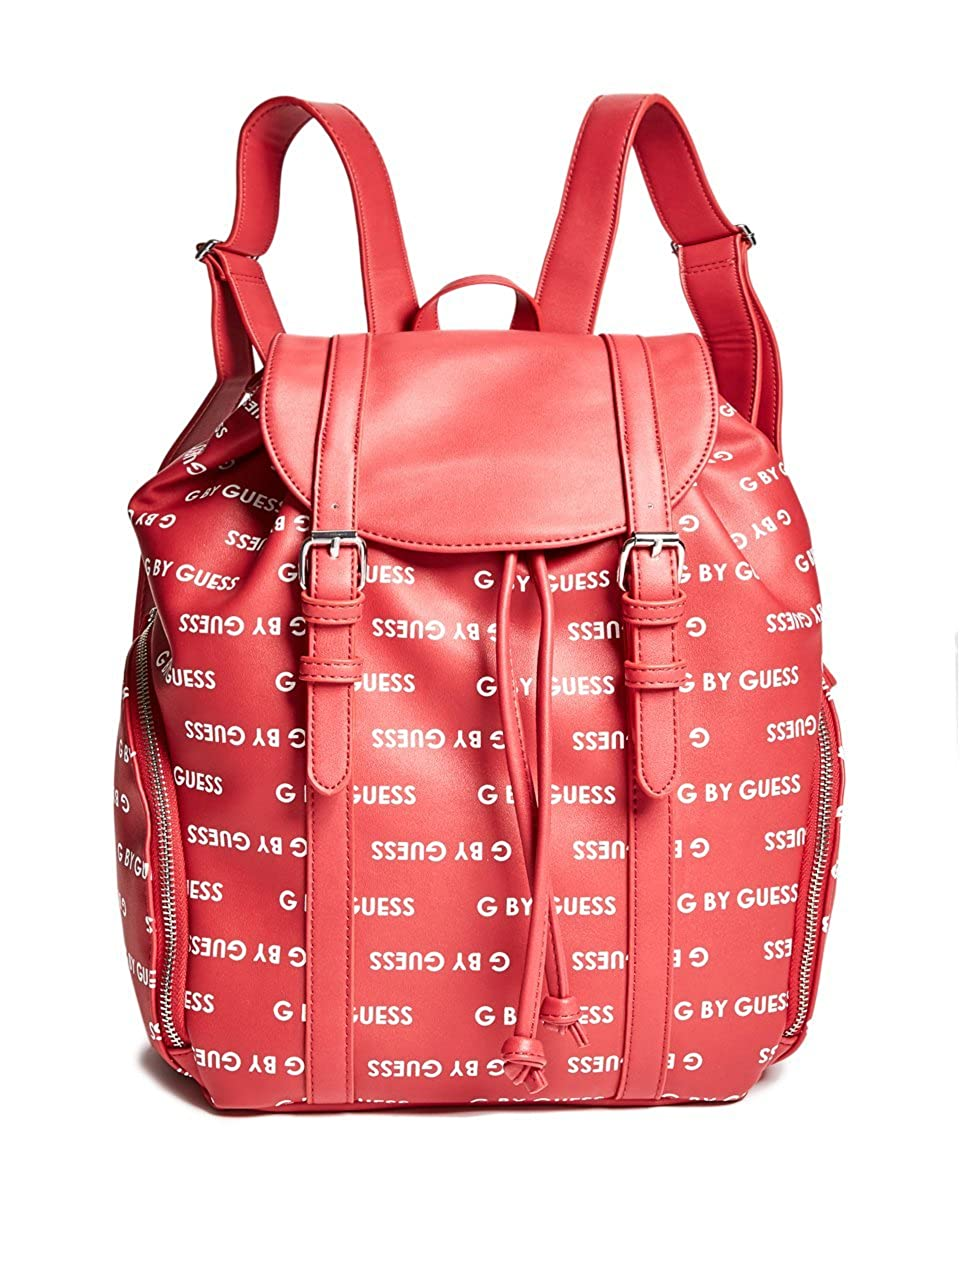 9eb22ba509 G by GUESS Women s Atheleisure Logo Backpack  Amazon.co.uk  Shoes   Bags